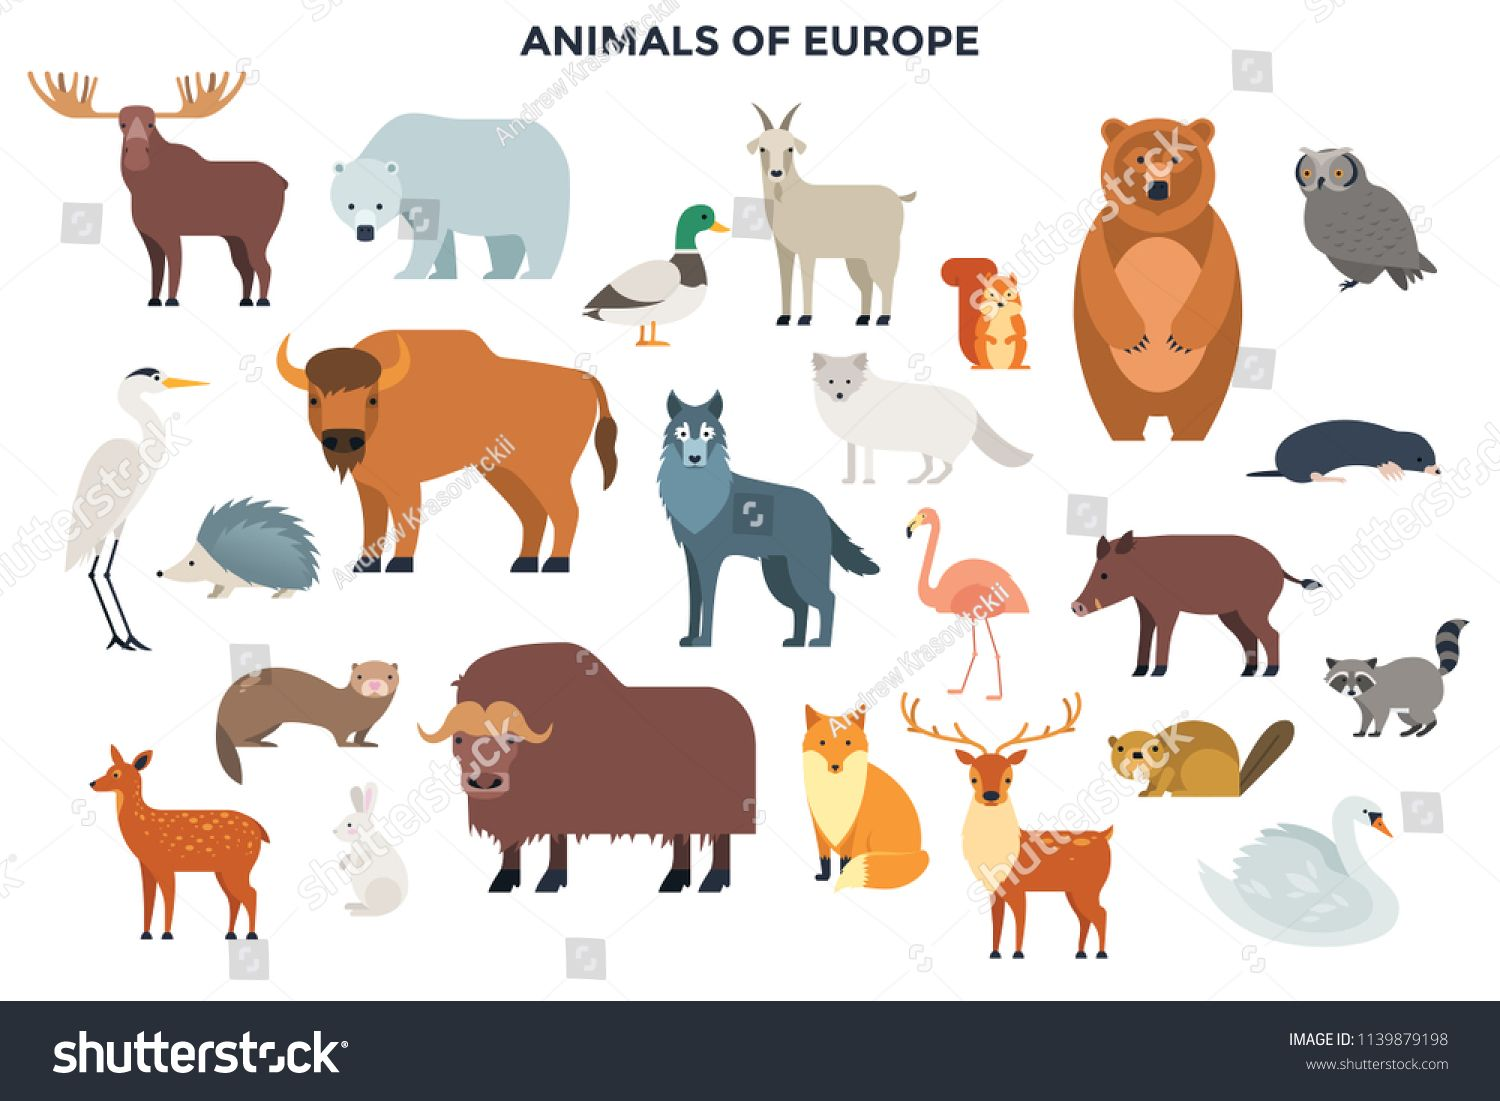 Big Collection Of Cute Funny Wild European Animals And Birds Bundle Of Adorable Cartoon Characters Isolated On White B Pet Birds Cartoon Animals Animal Design